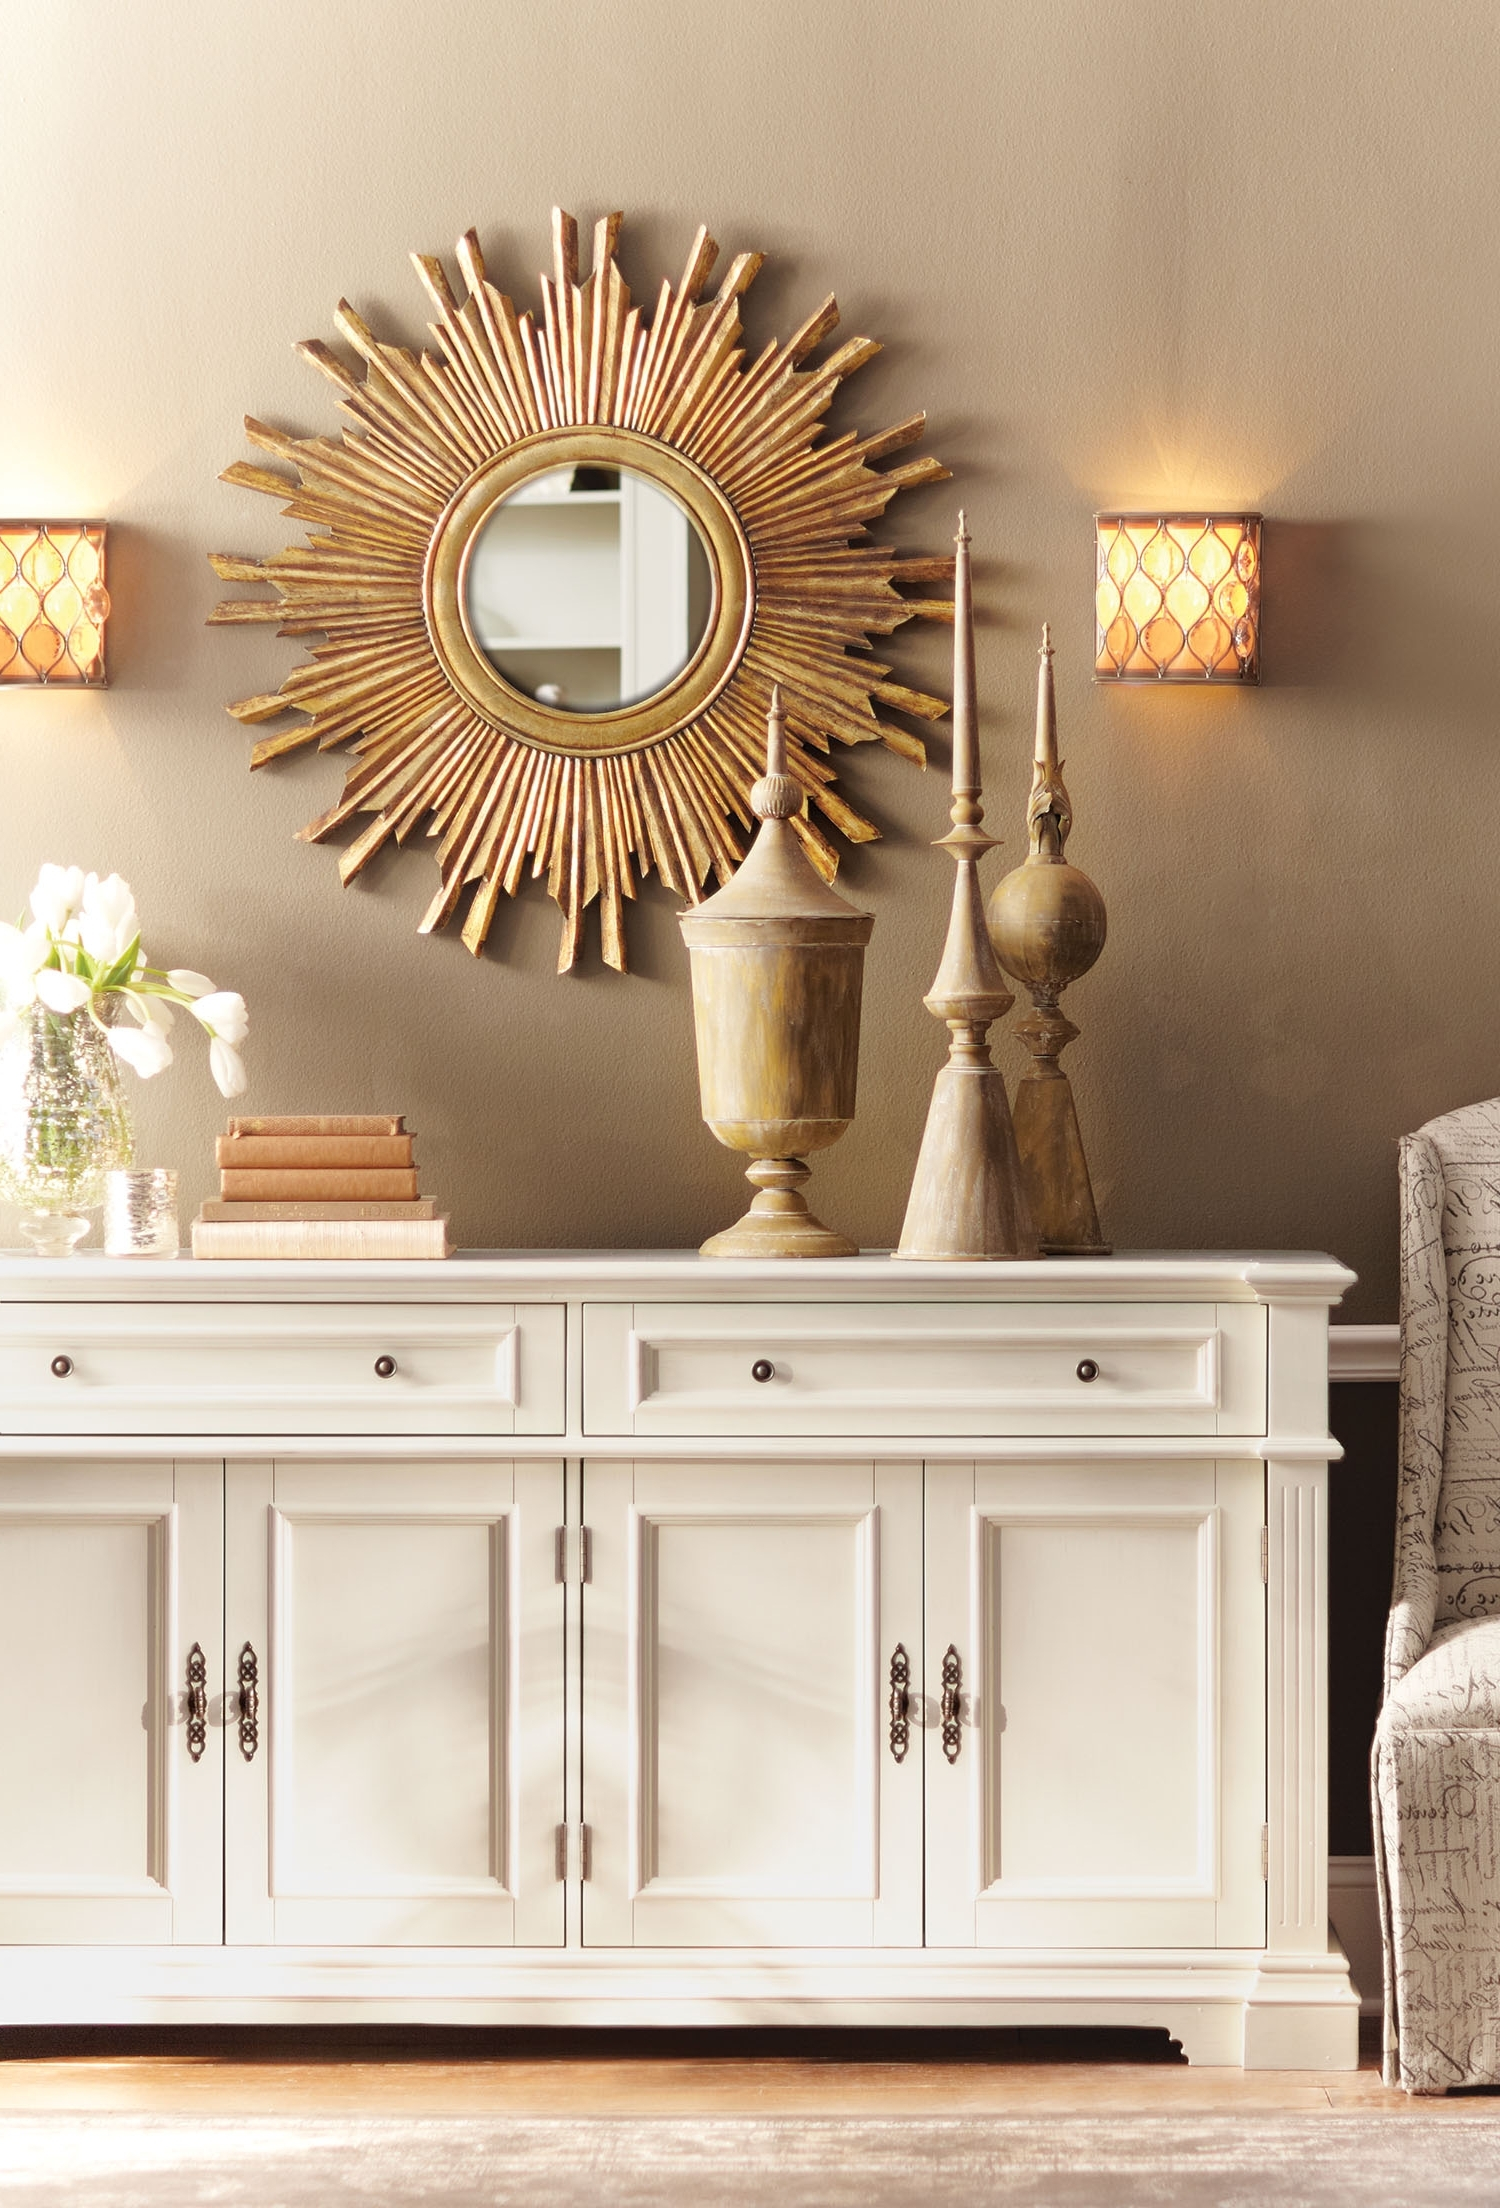 Fashionable Mirrors Wall Accents Within Gorgeous In Gold (View 9 of 15)